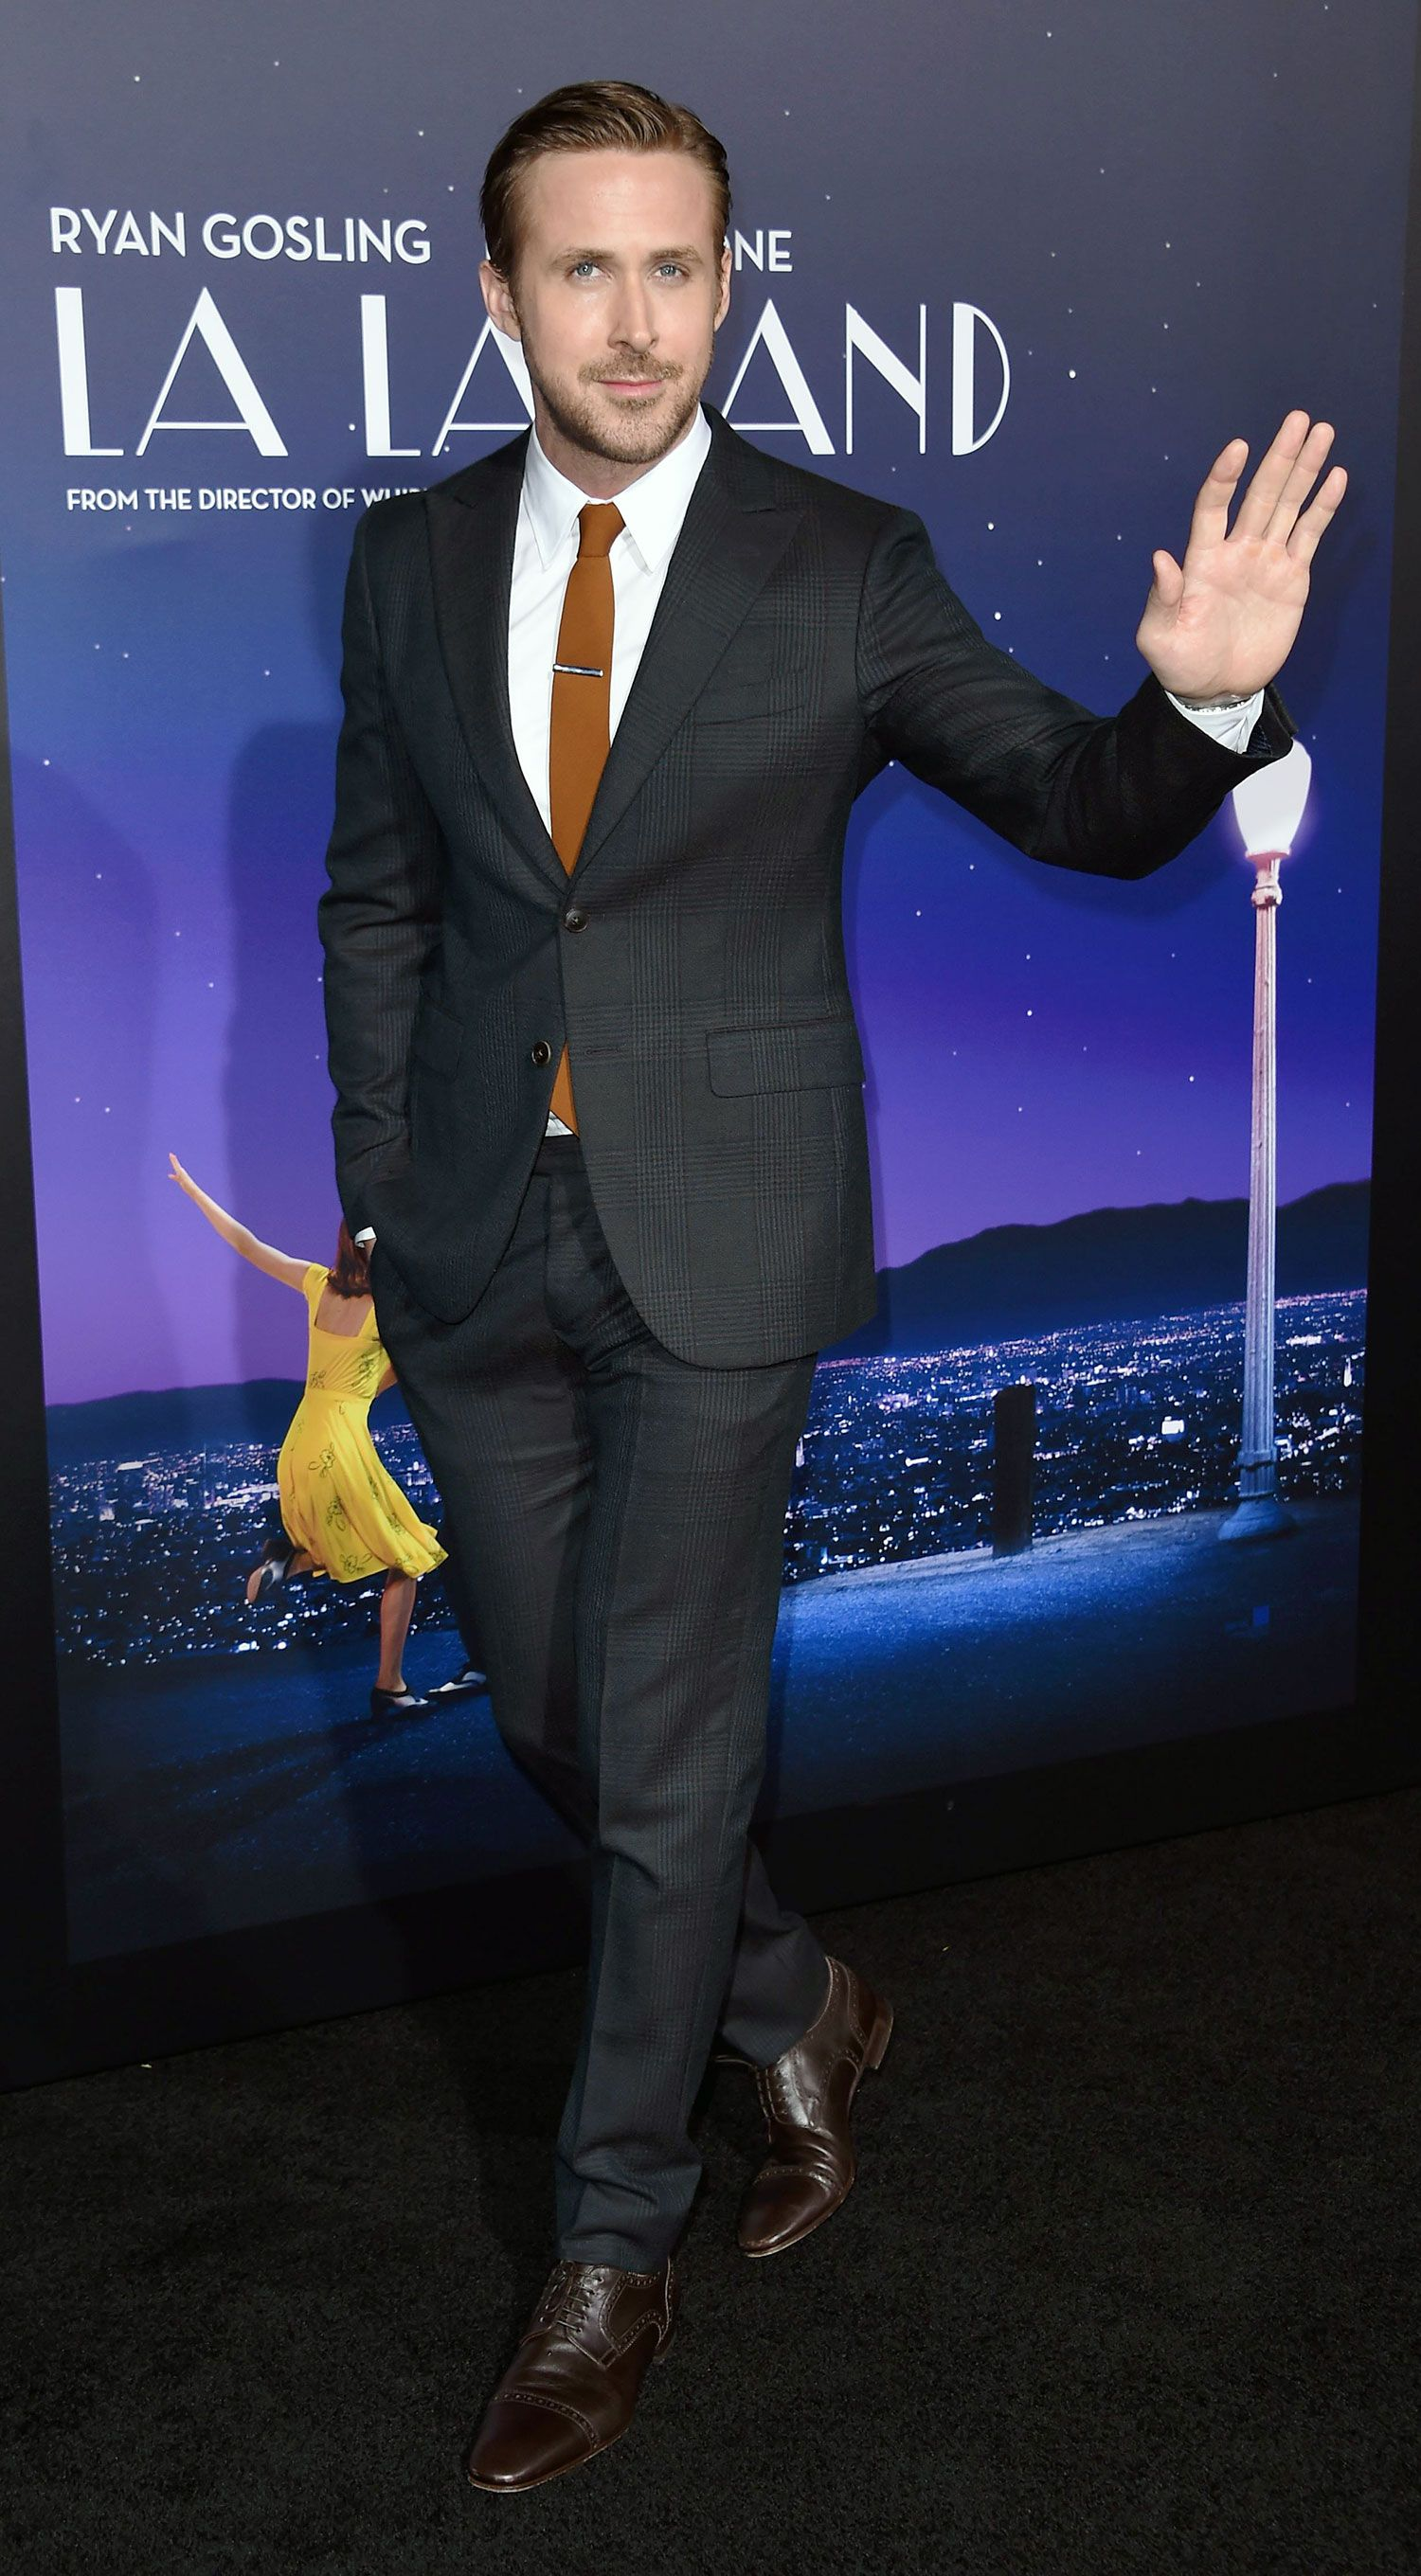 Ryan Gosling Shows You The Right Way To Wear A Suit This Winter Ryan Gosling Suit Ryan Gosling Ryan Gosling Style